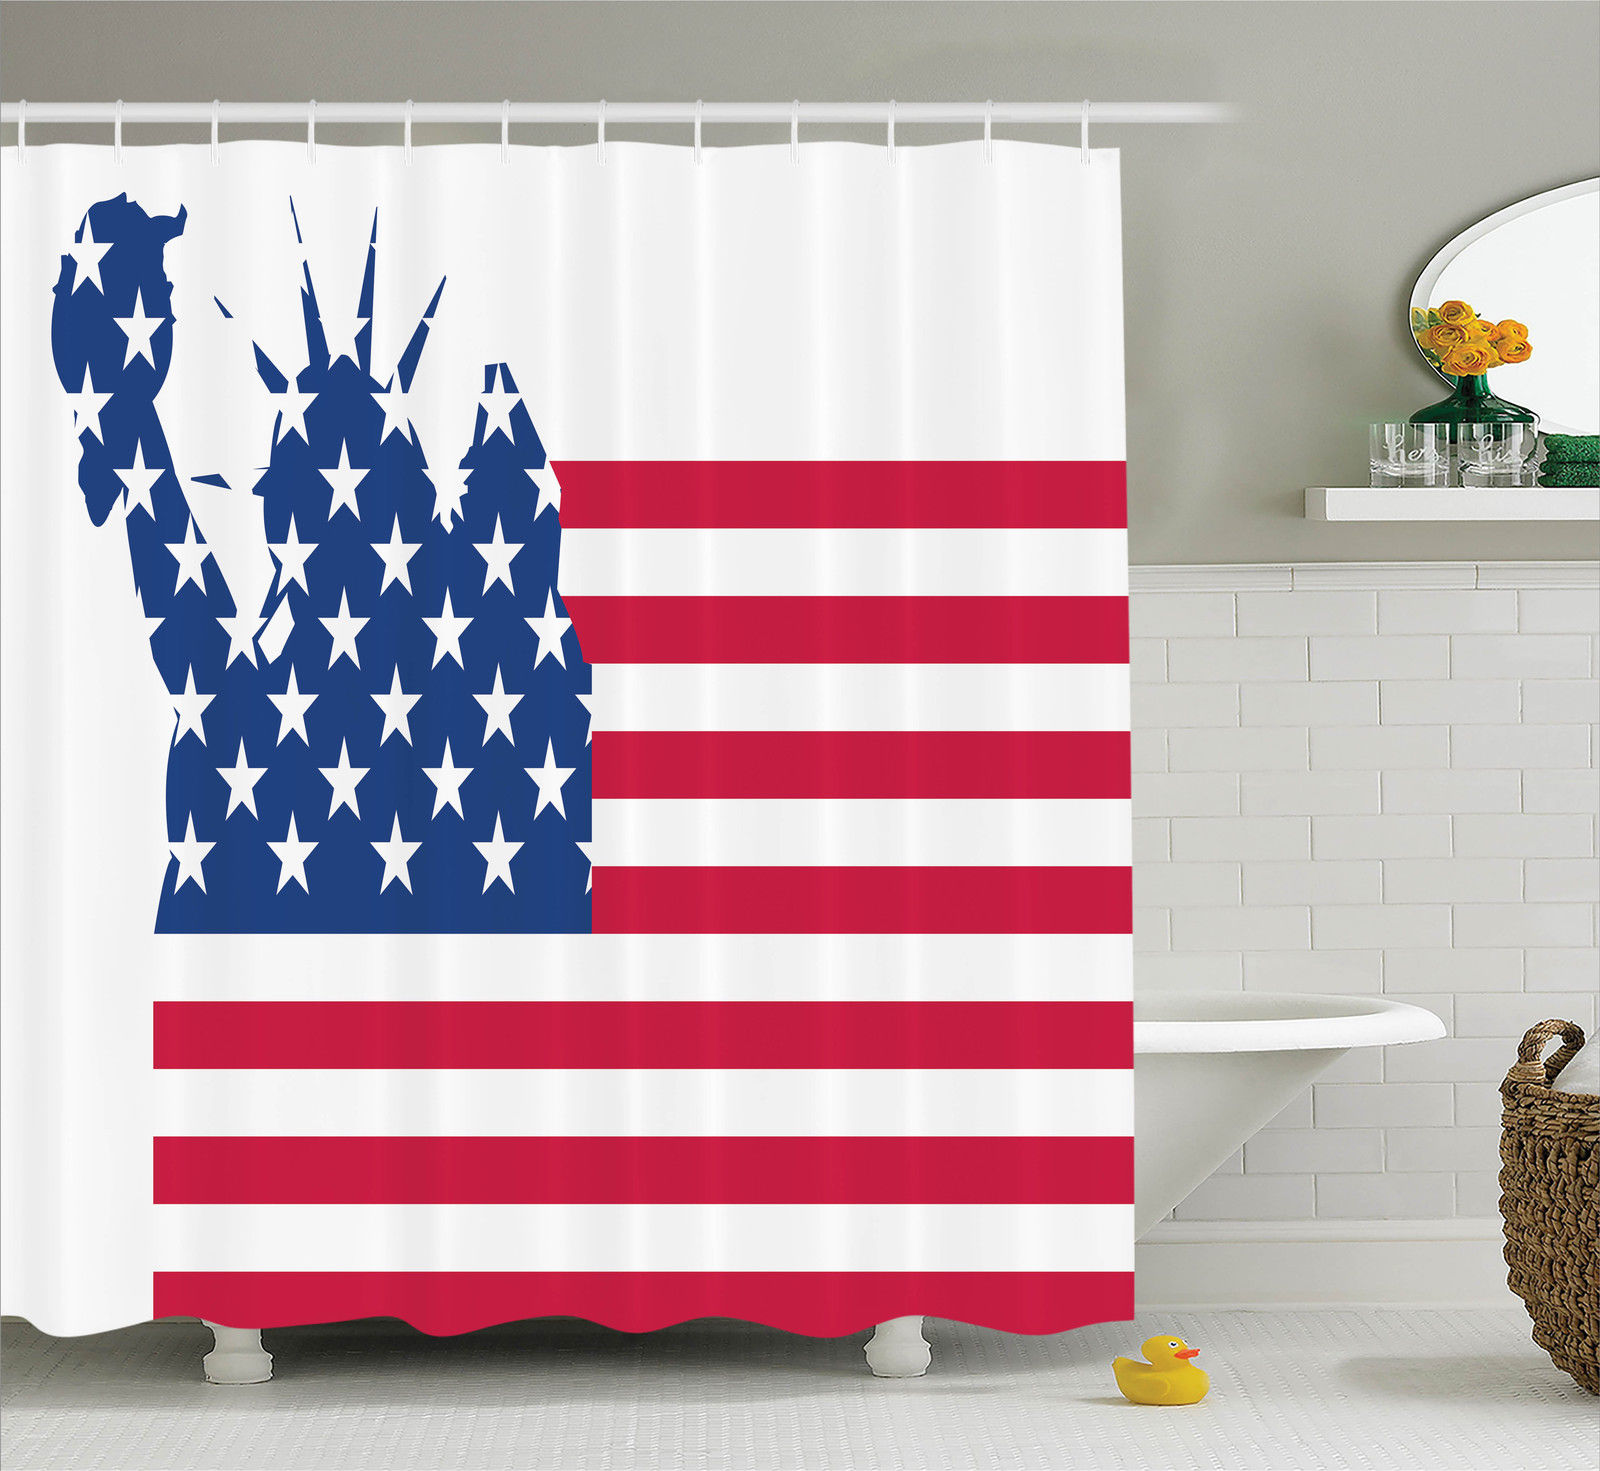 Nyc Decor  Statue Of Liberty On Flag Silhouette Of Univer...